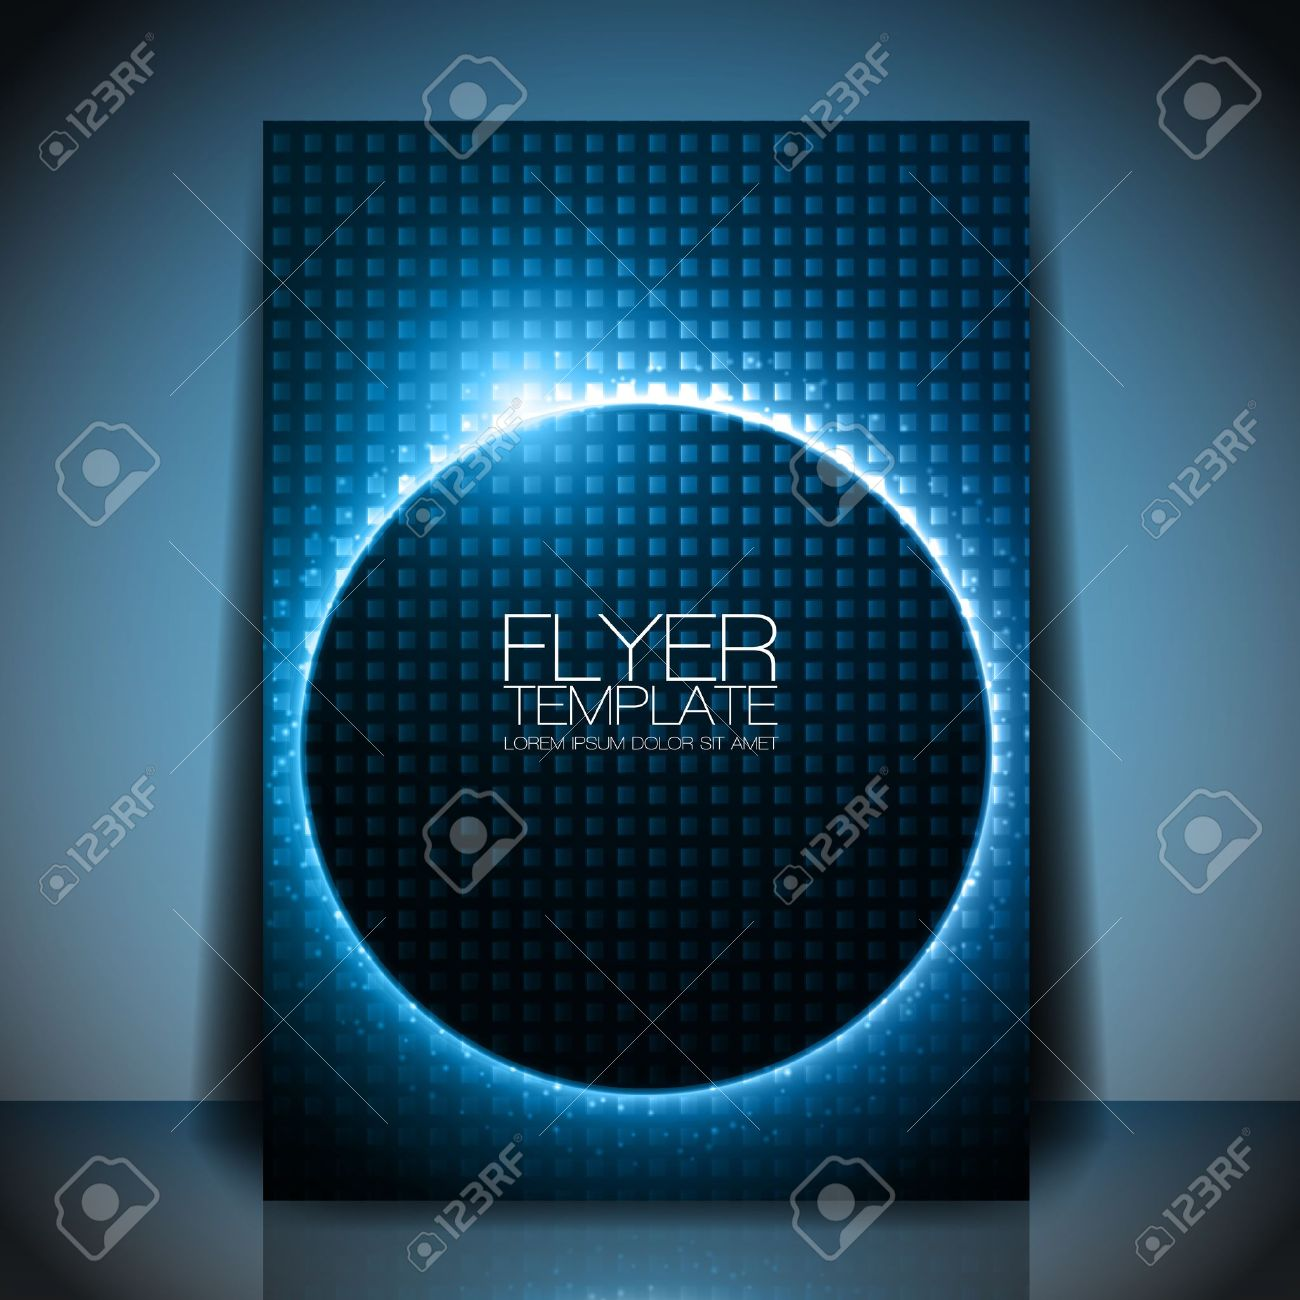 Abstract Flyer Template Blue Shiny Circle Behind Dark Design – Blue Flyer Template